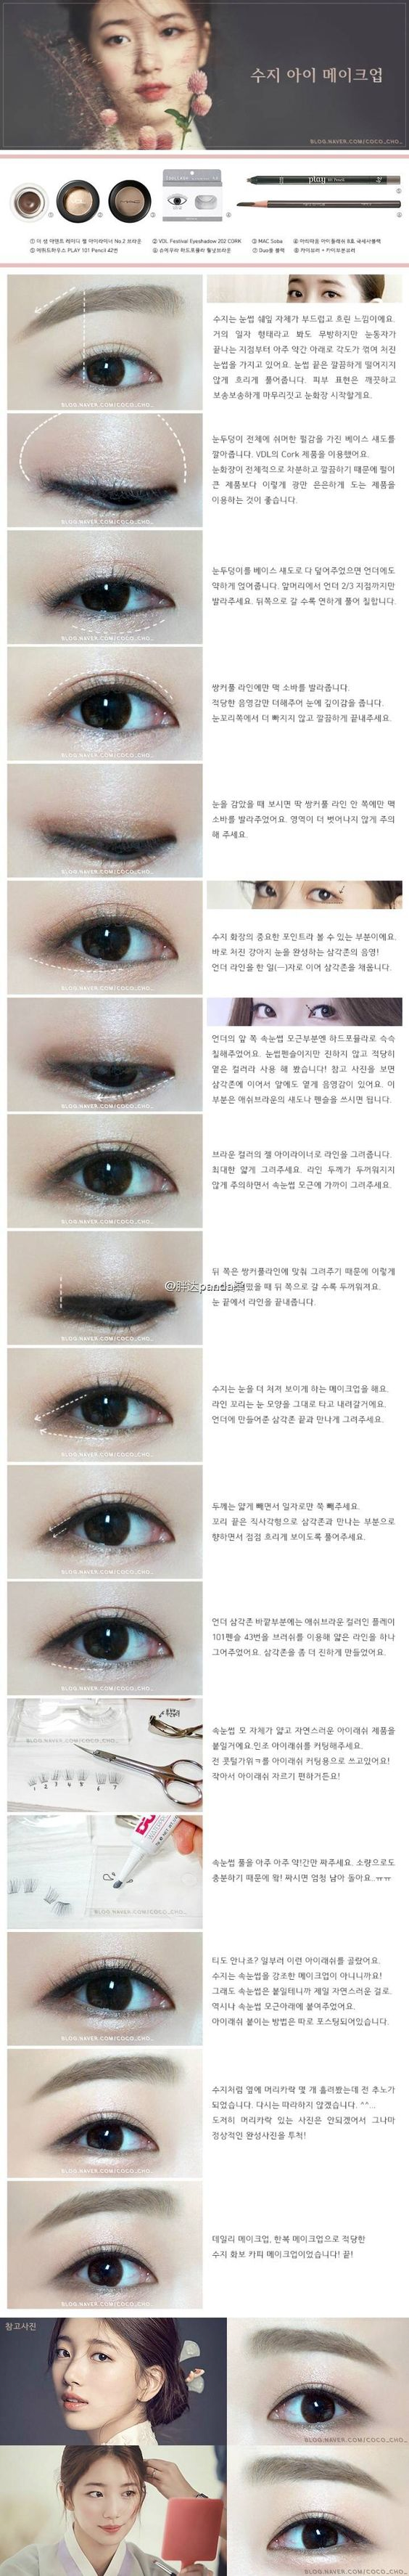 MISS A SUZY 《FIRST LOOK PICTORIAL》Korean kpop idol makeup tutorial (cr:coco_cho_.blog.me)